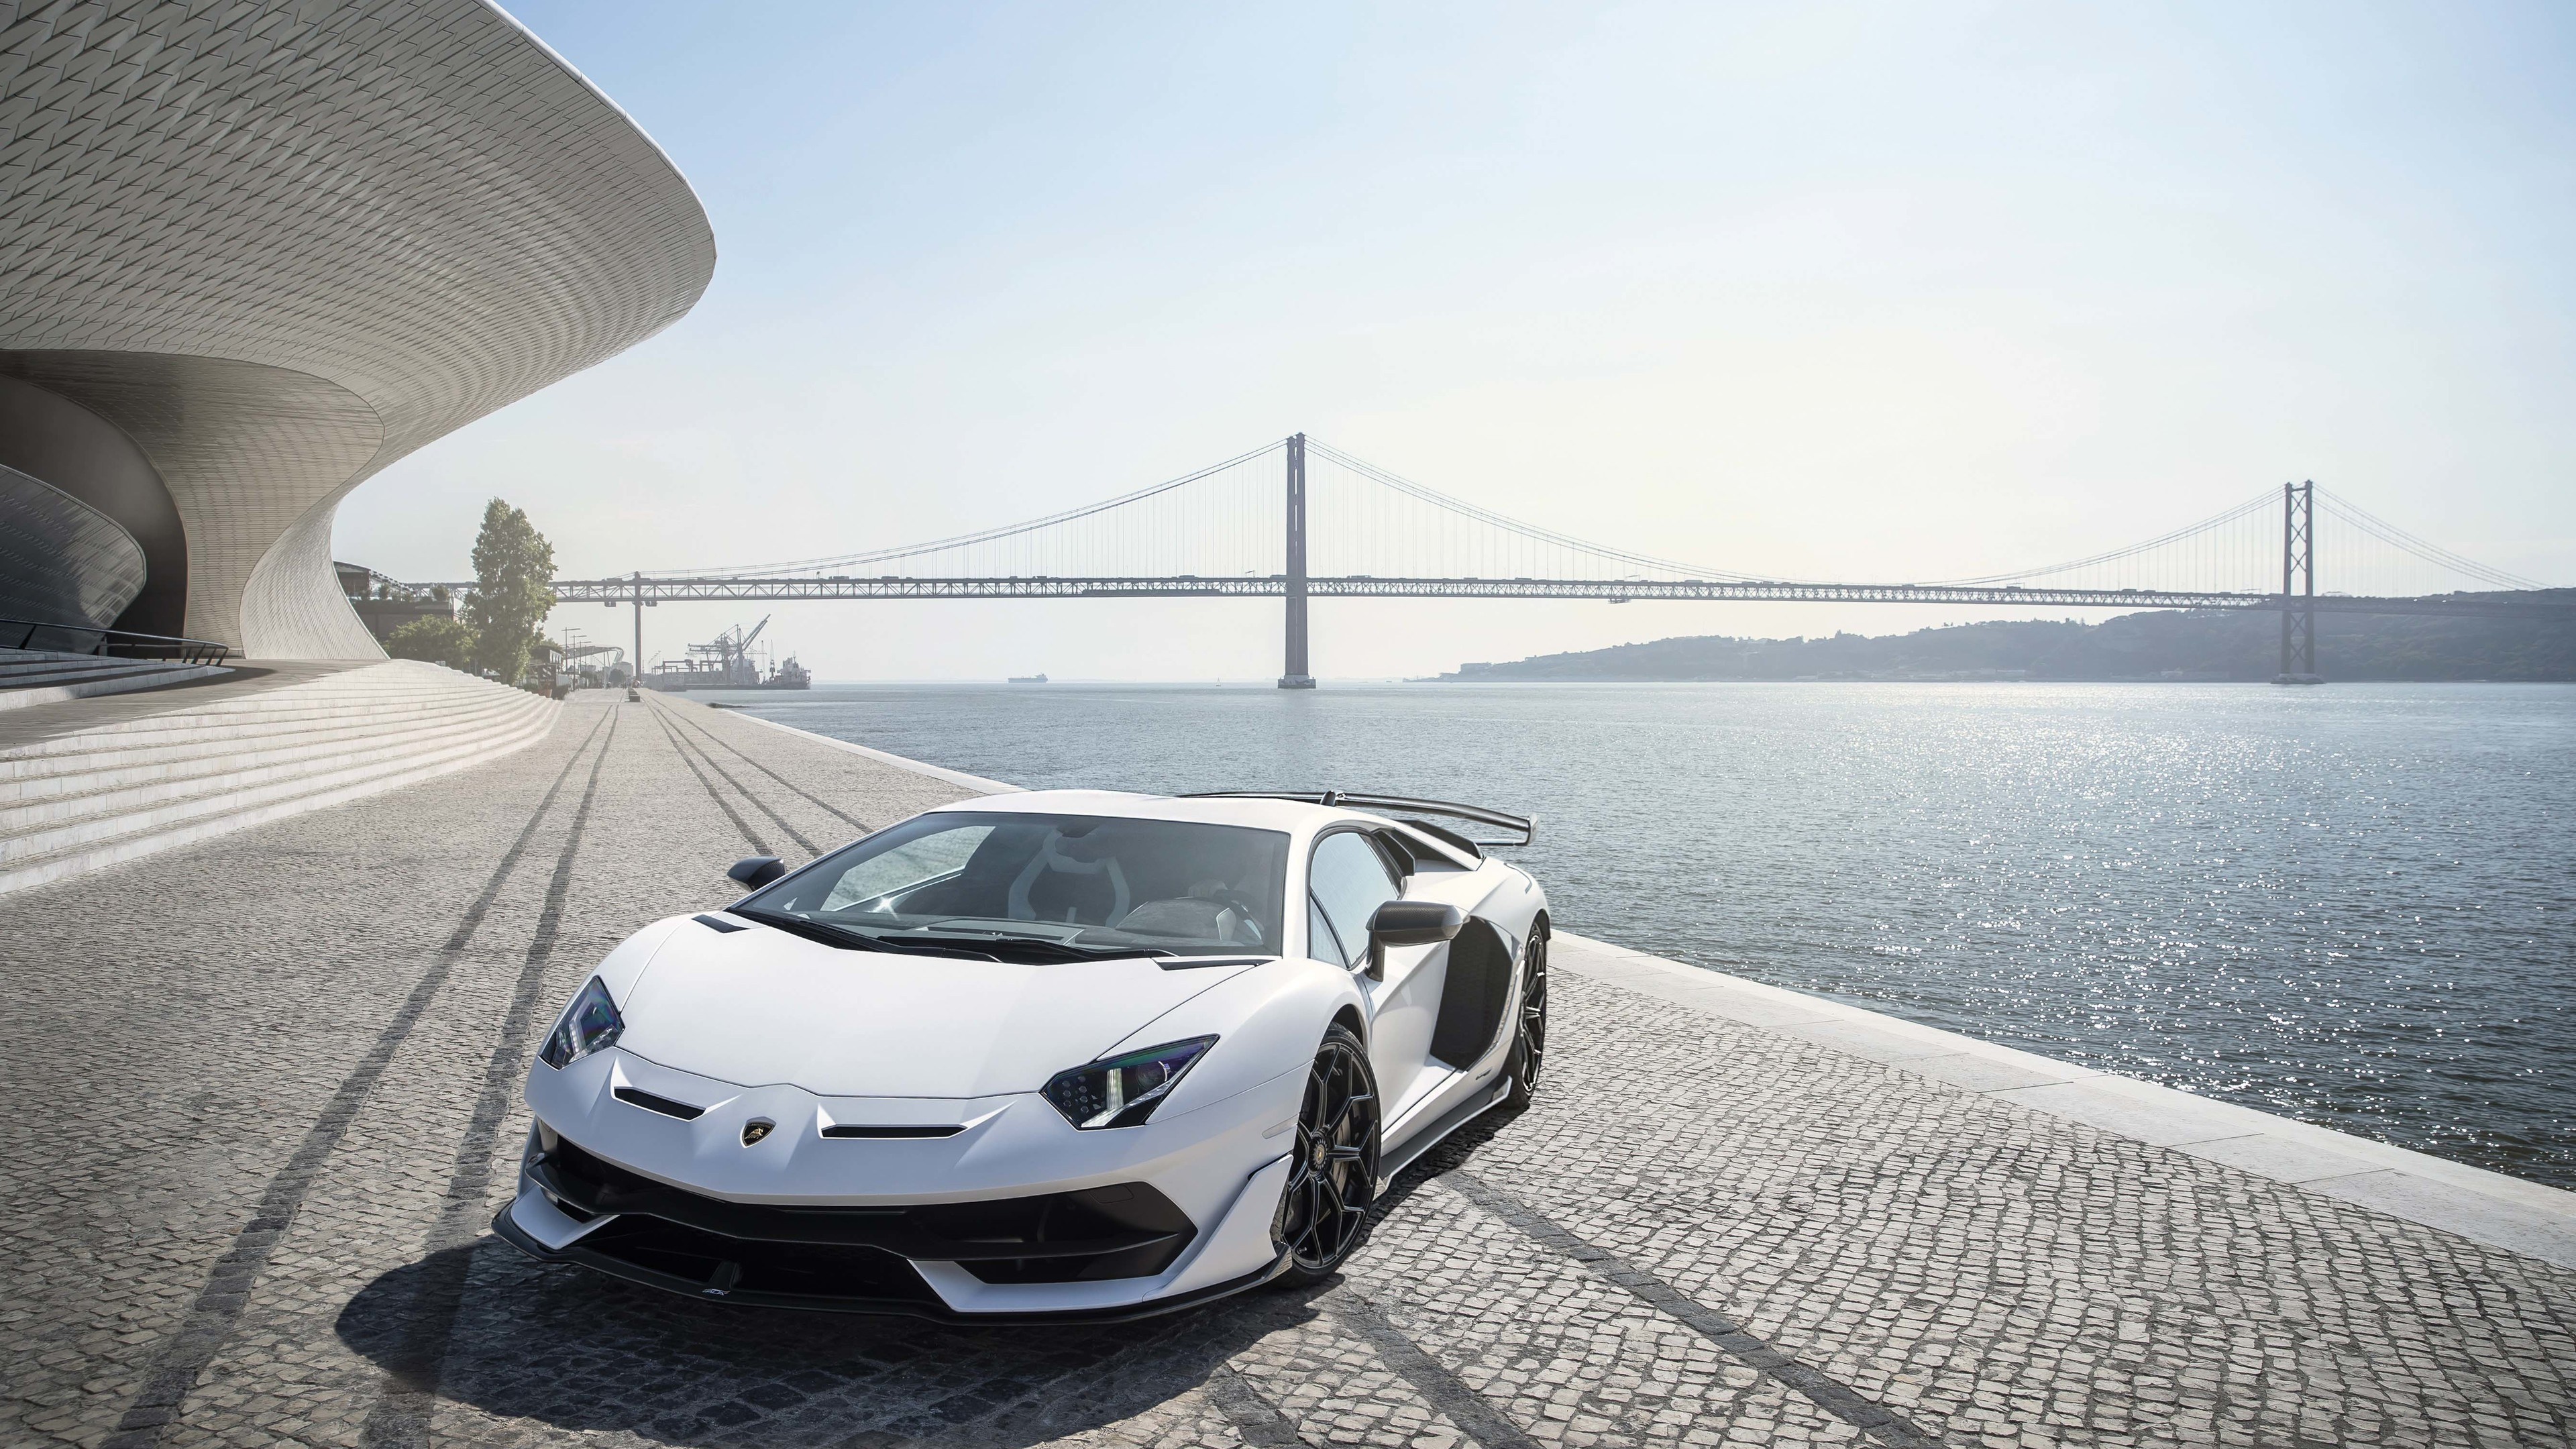 lamborghini aventador svj white lisbon 5k 1539792942 - Lamborghini Aventador SVJ White Lisbon 5k - lamborghini wallpapers, lamborghini aventador wallpapers, lamborghini aventador svj wallpapers, hd-wallpapers, cars wallpapers, 5k wallpapers, 4k-wallpapers, 2018 cars wallpapers